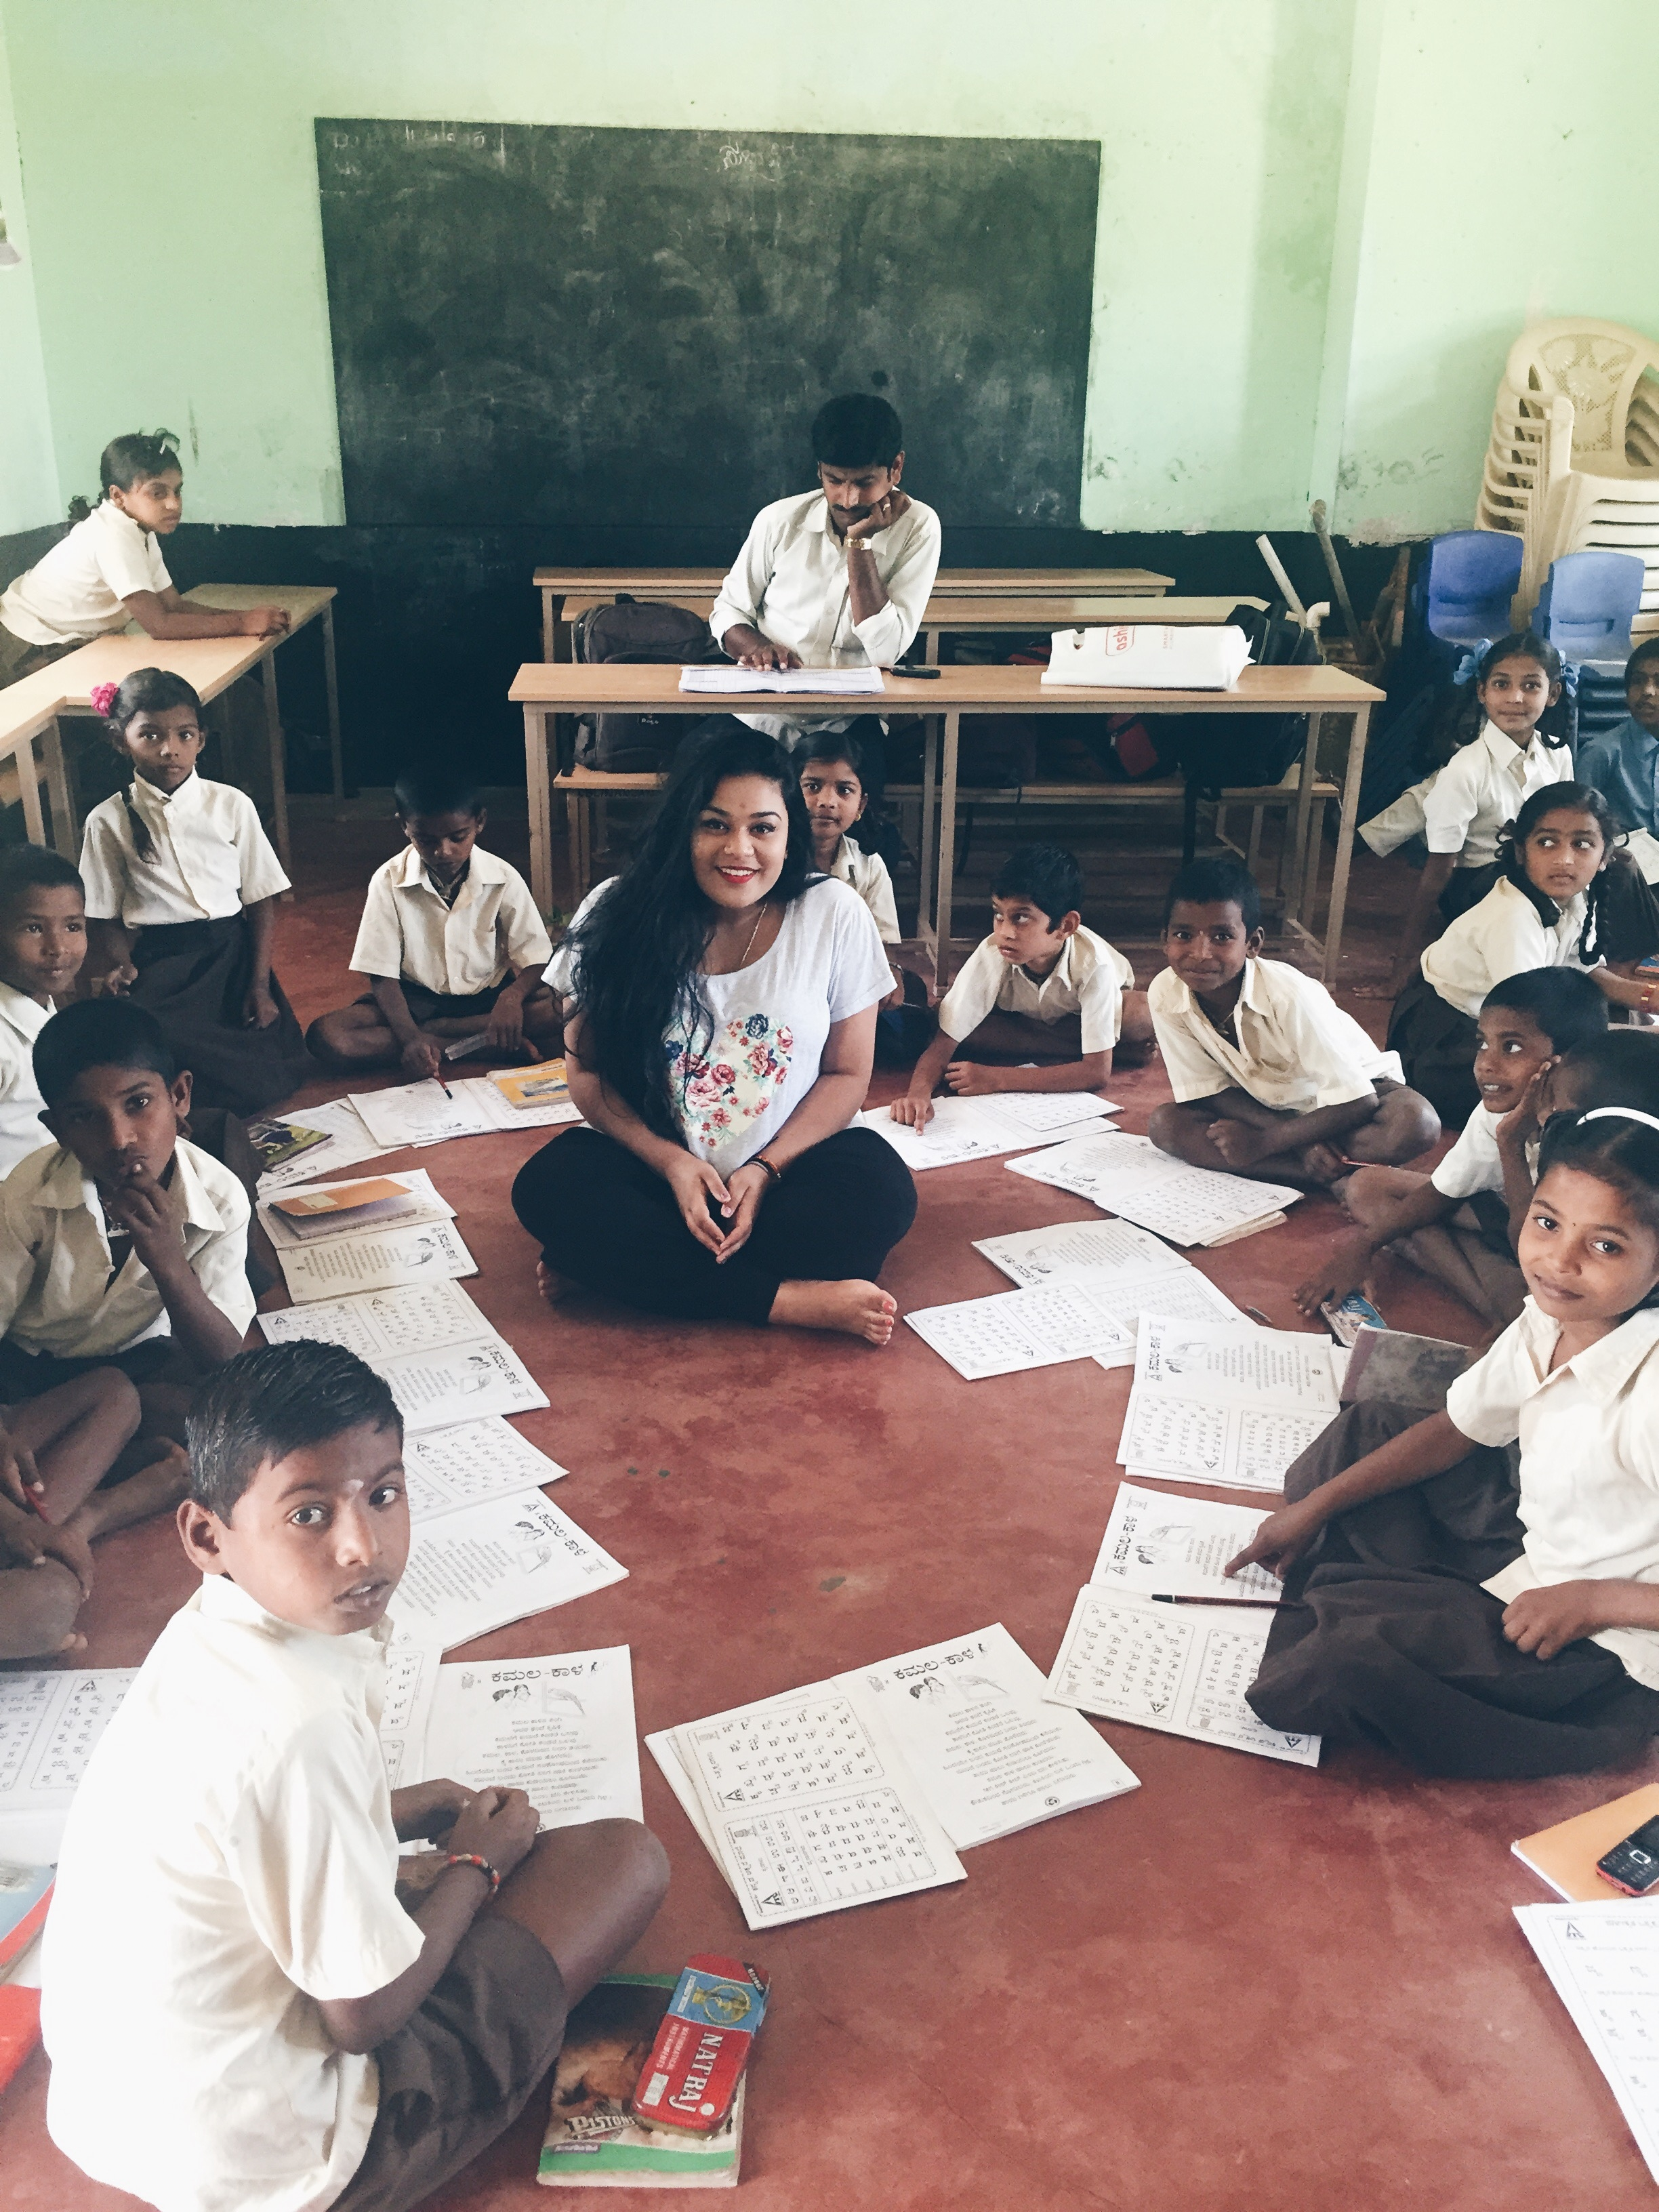 Rayali teaching students English in a classroom in Bangalore.